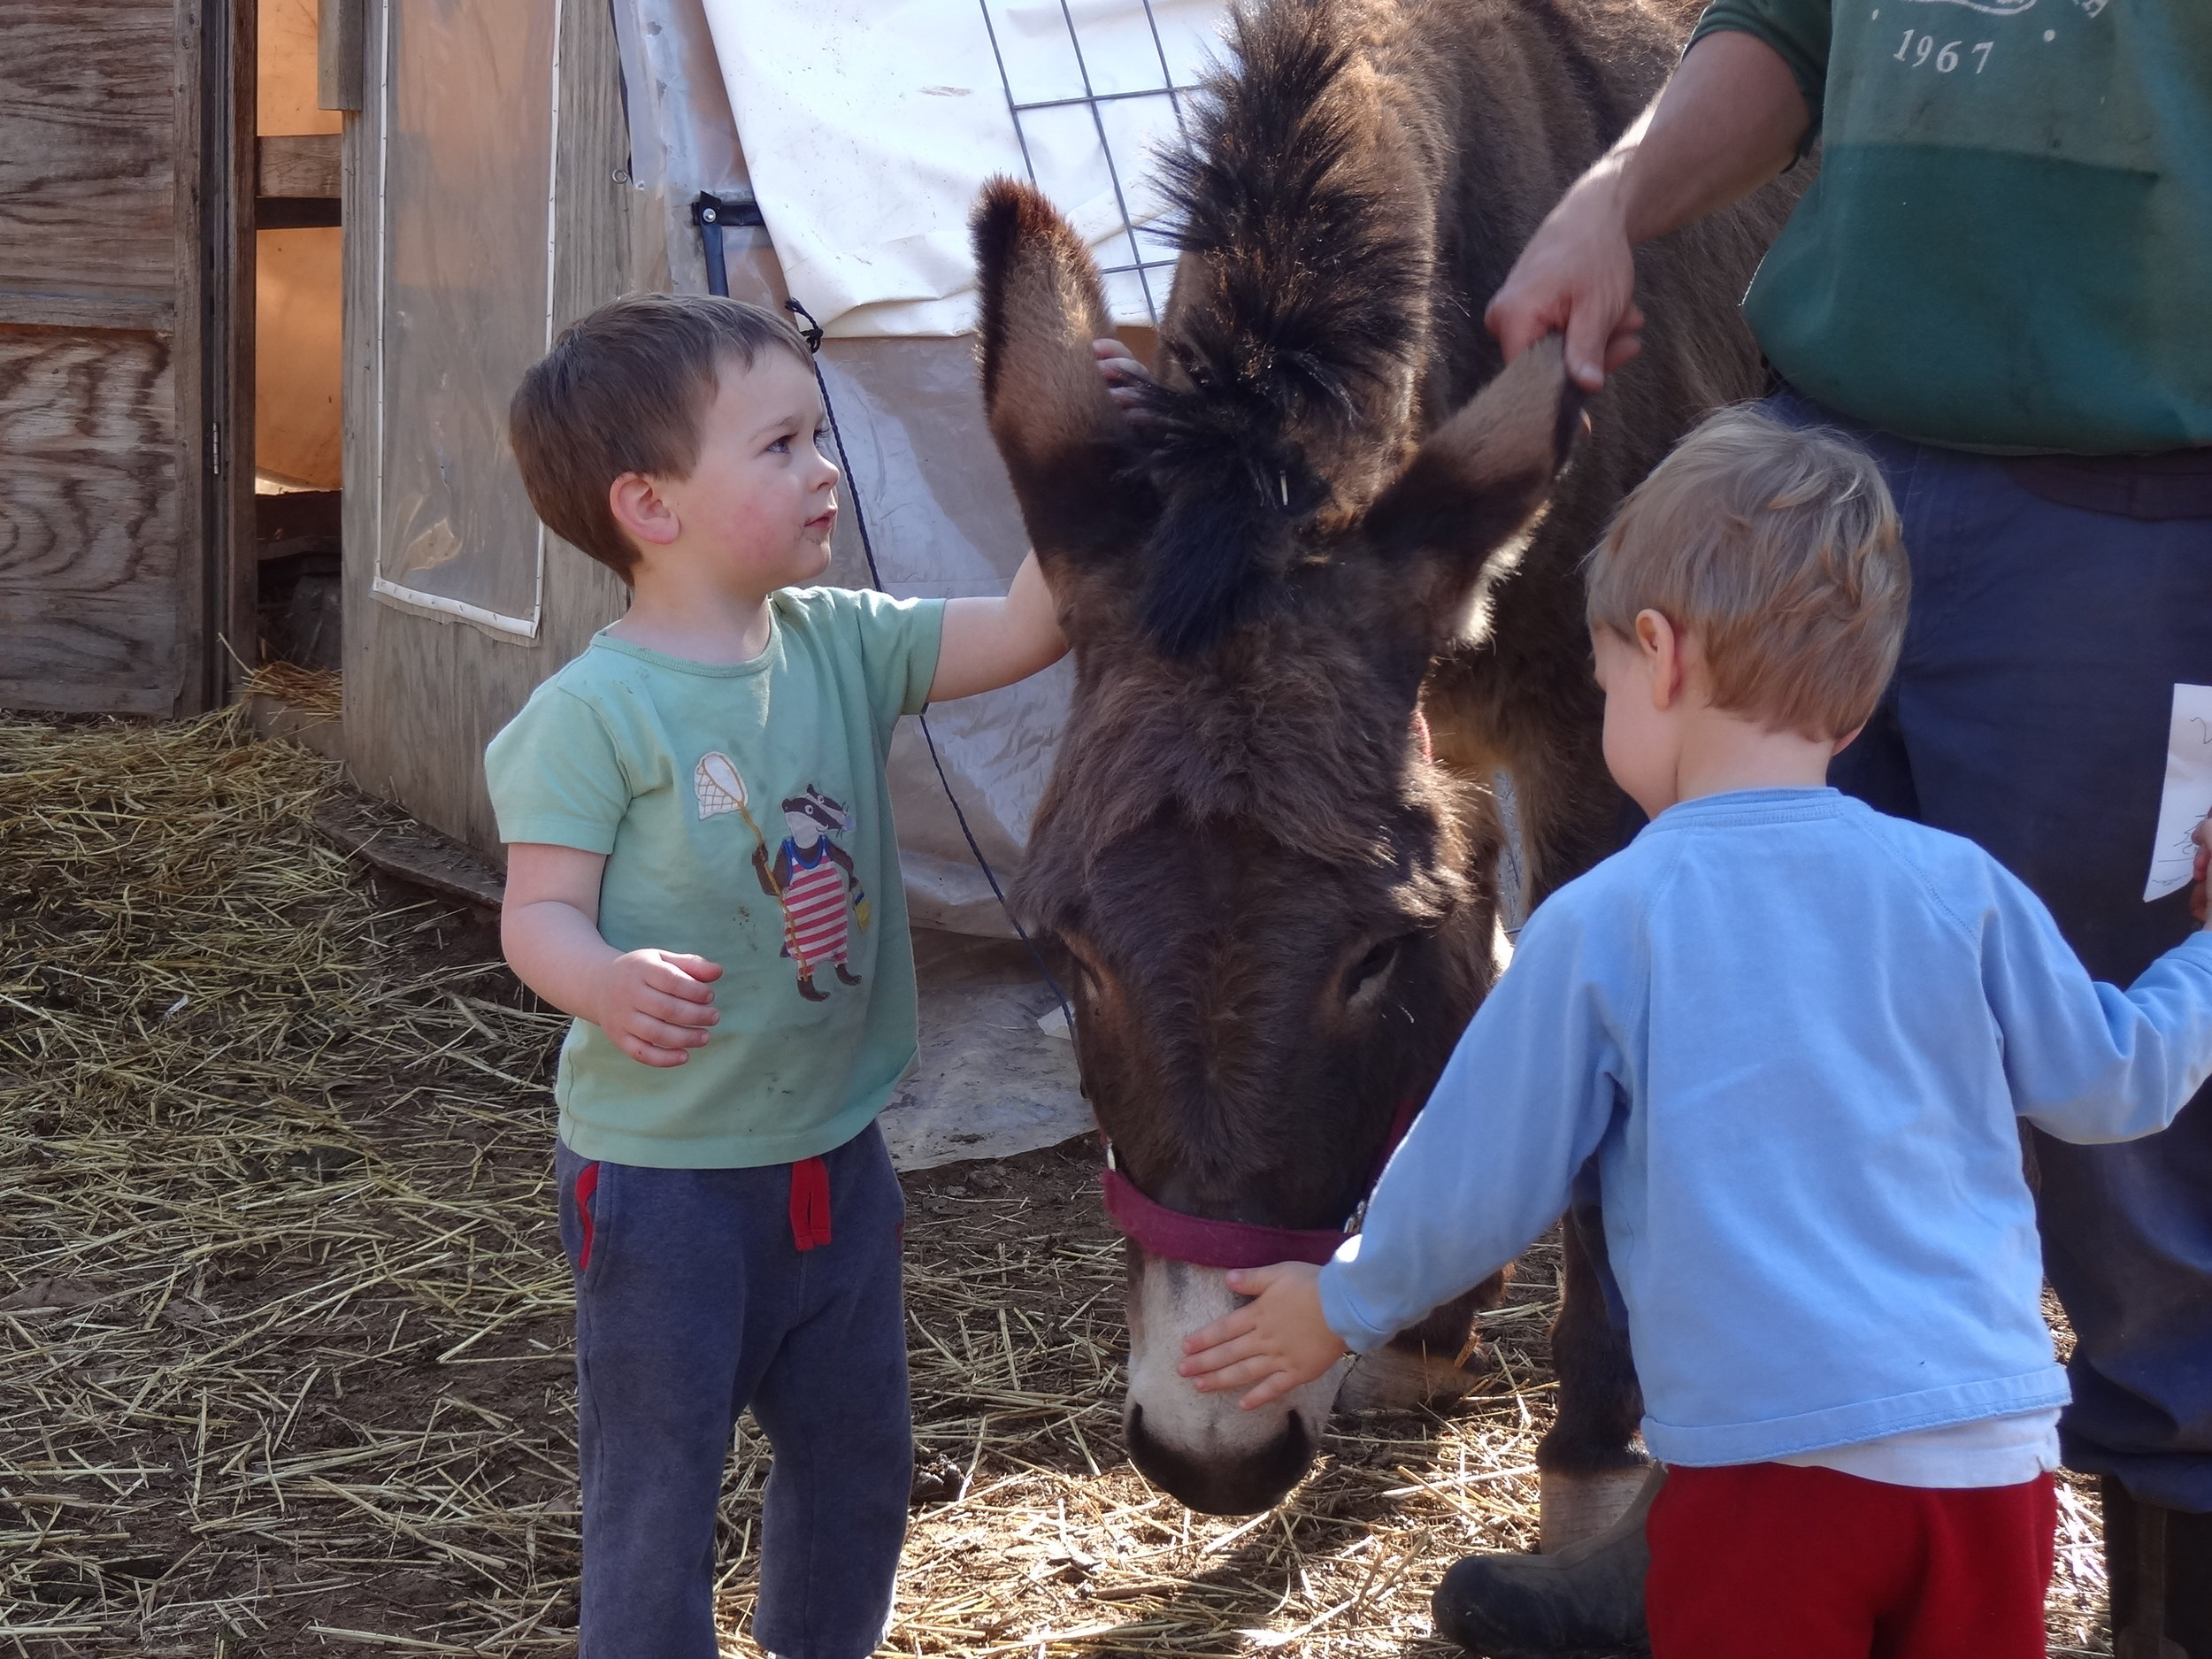 Children enjoyed petting Lulu, the donkey